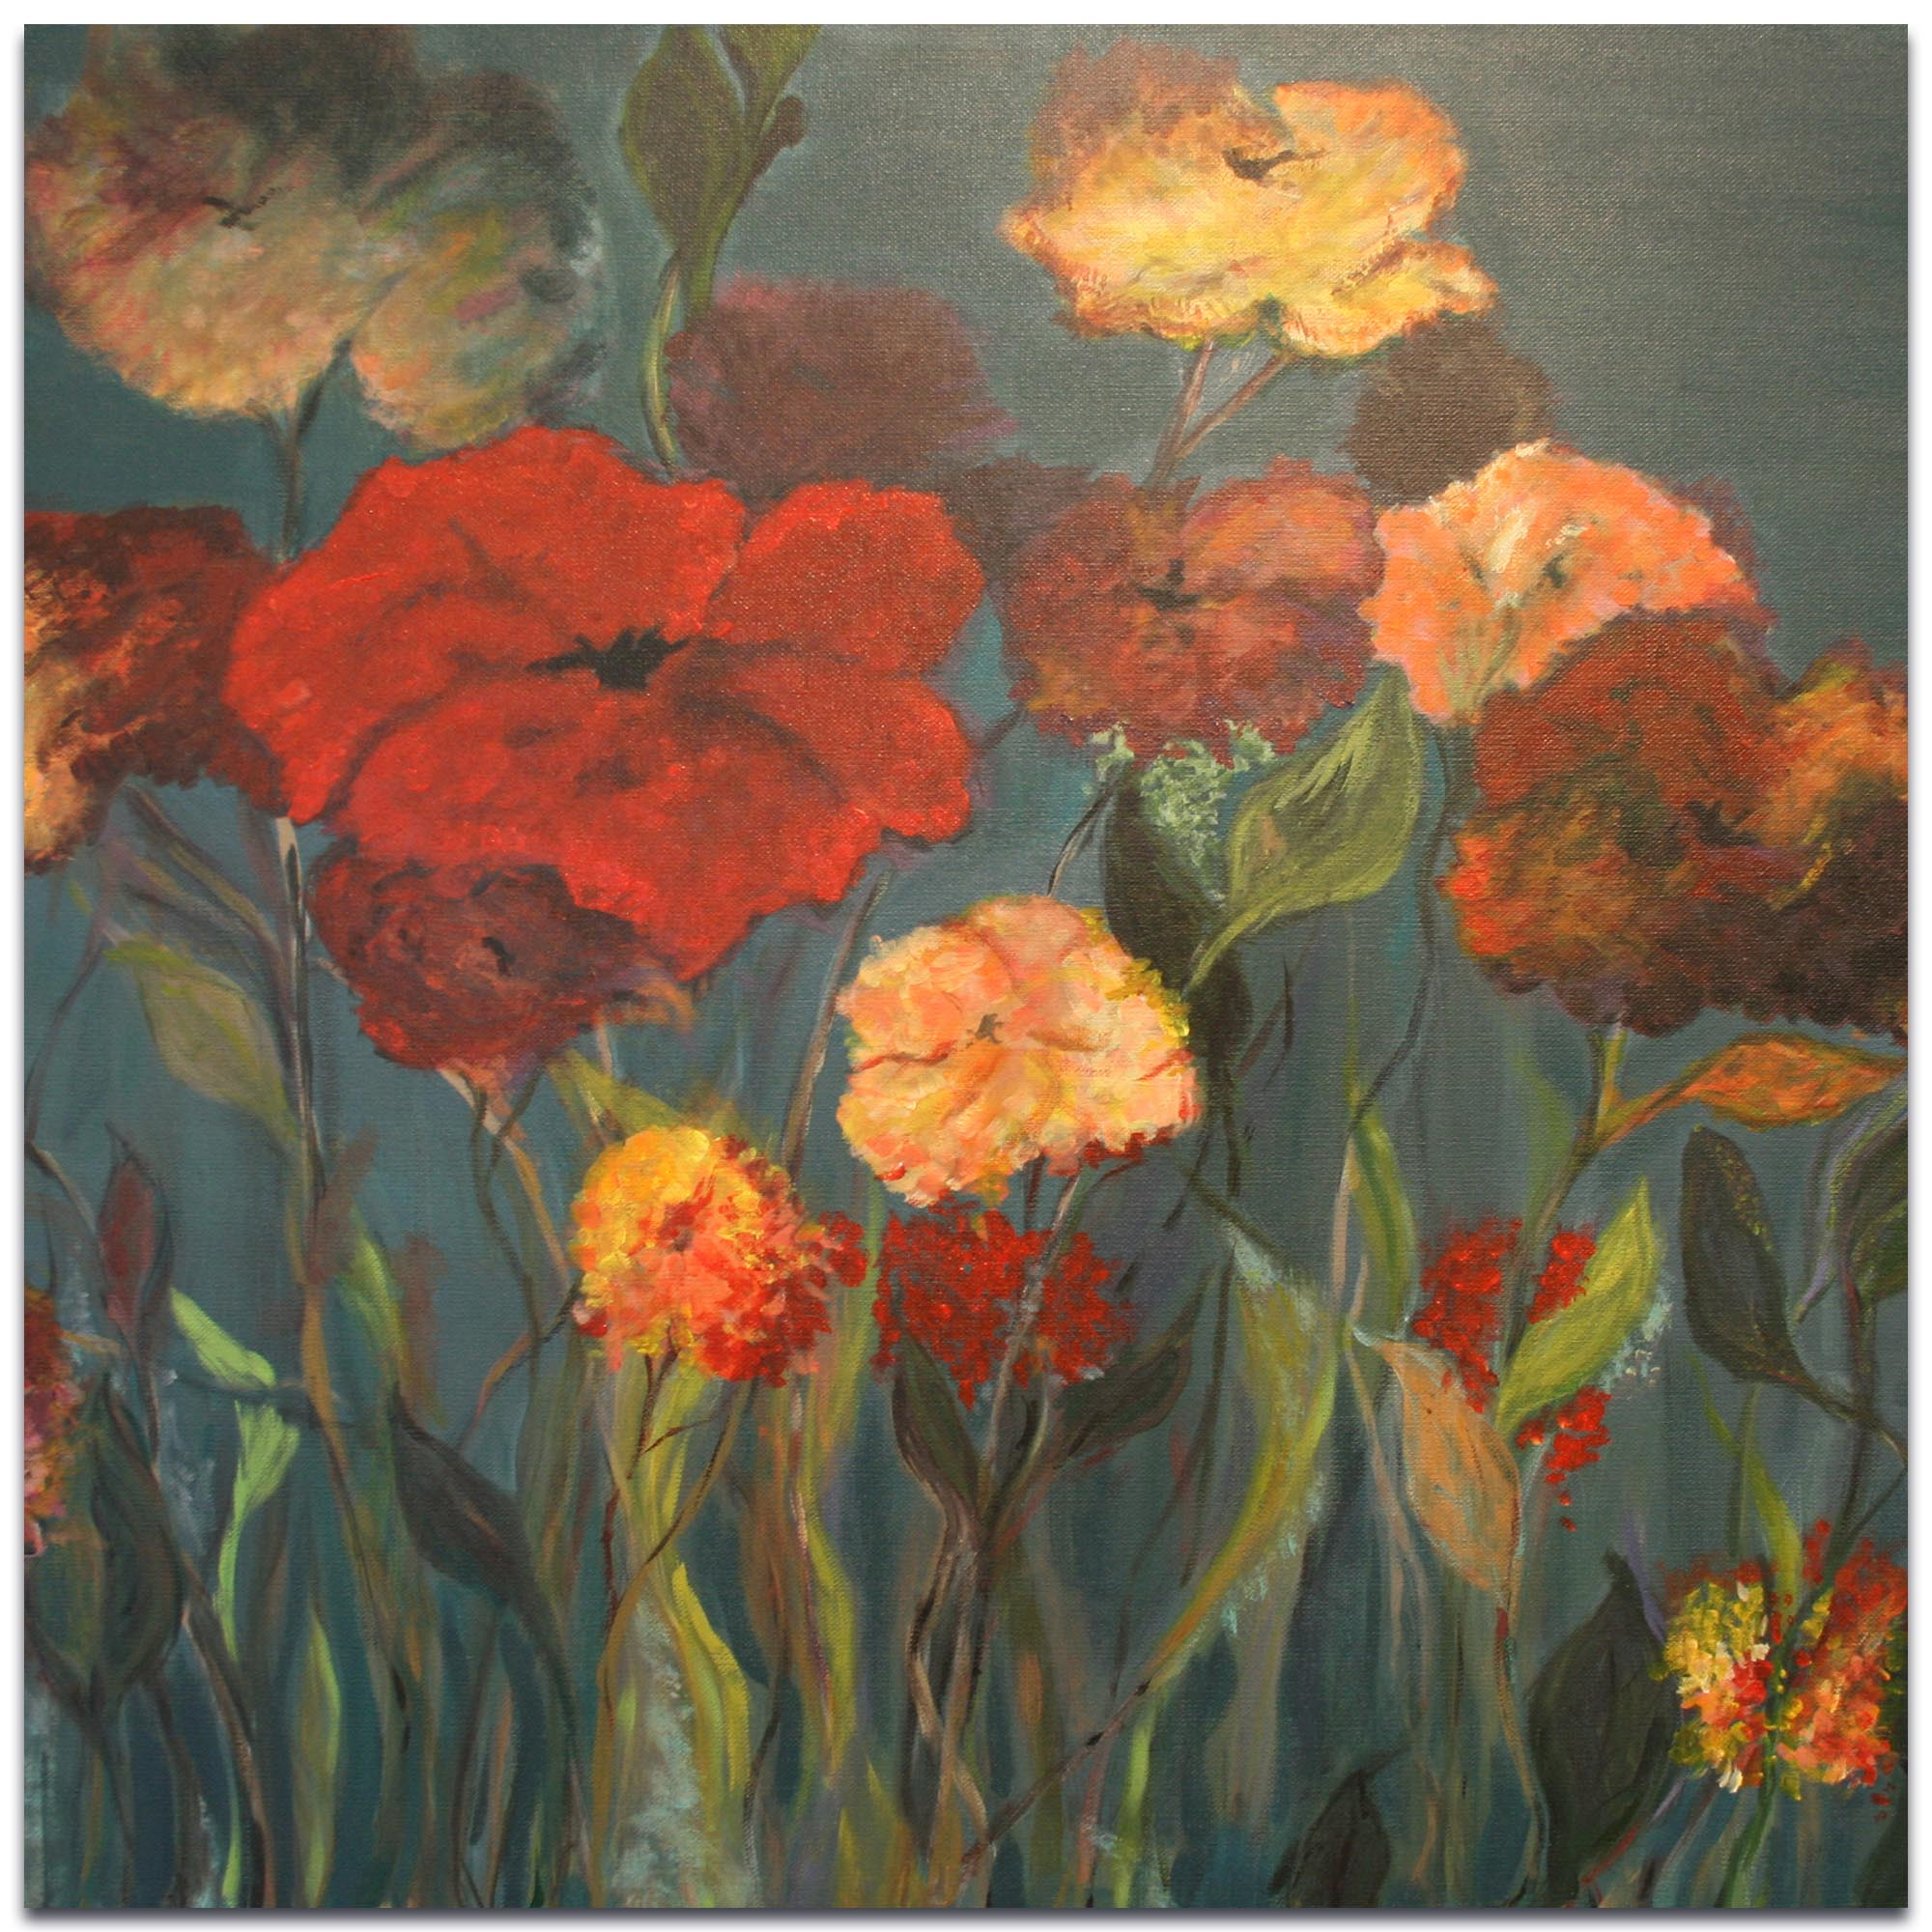 Traditional Wall Art 'Flower Patch' - Flower Bouquet Decor on Metal or Plexiglass